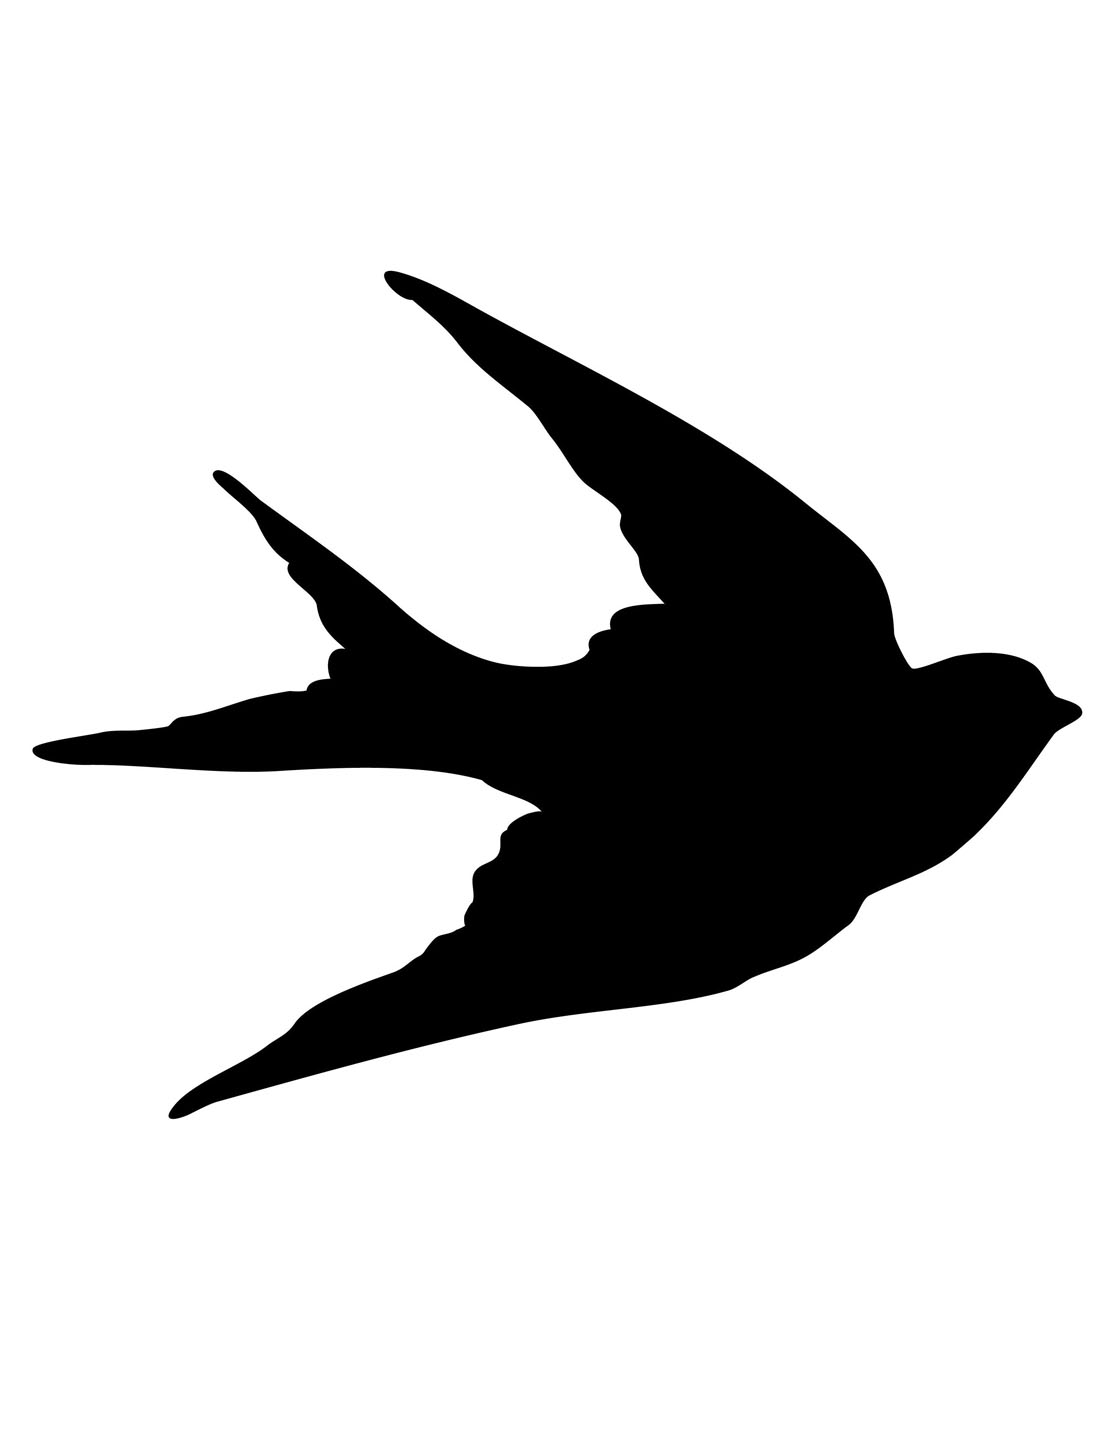 Leaning bird silhouette clipart black and white graphic library download Free Silhouettes, Download Free Clip Art, Free Clip Art on Clipart ... graphic library download